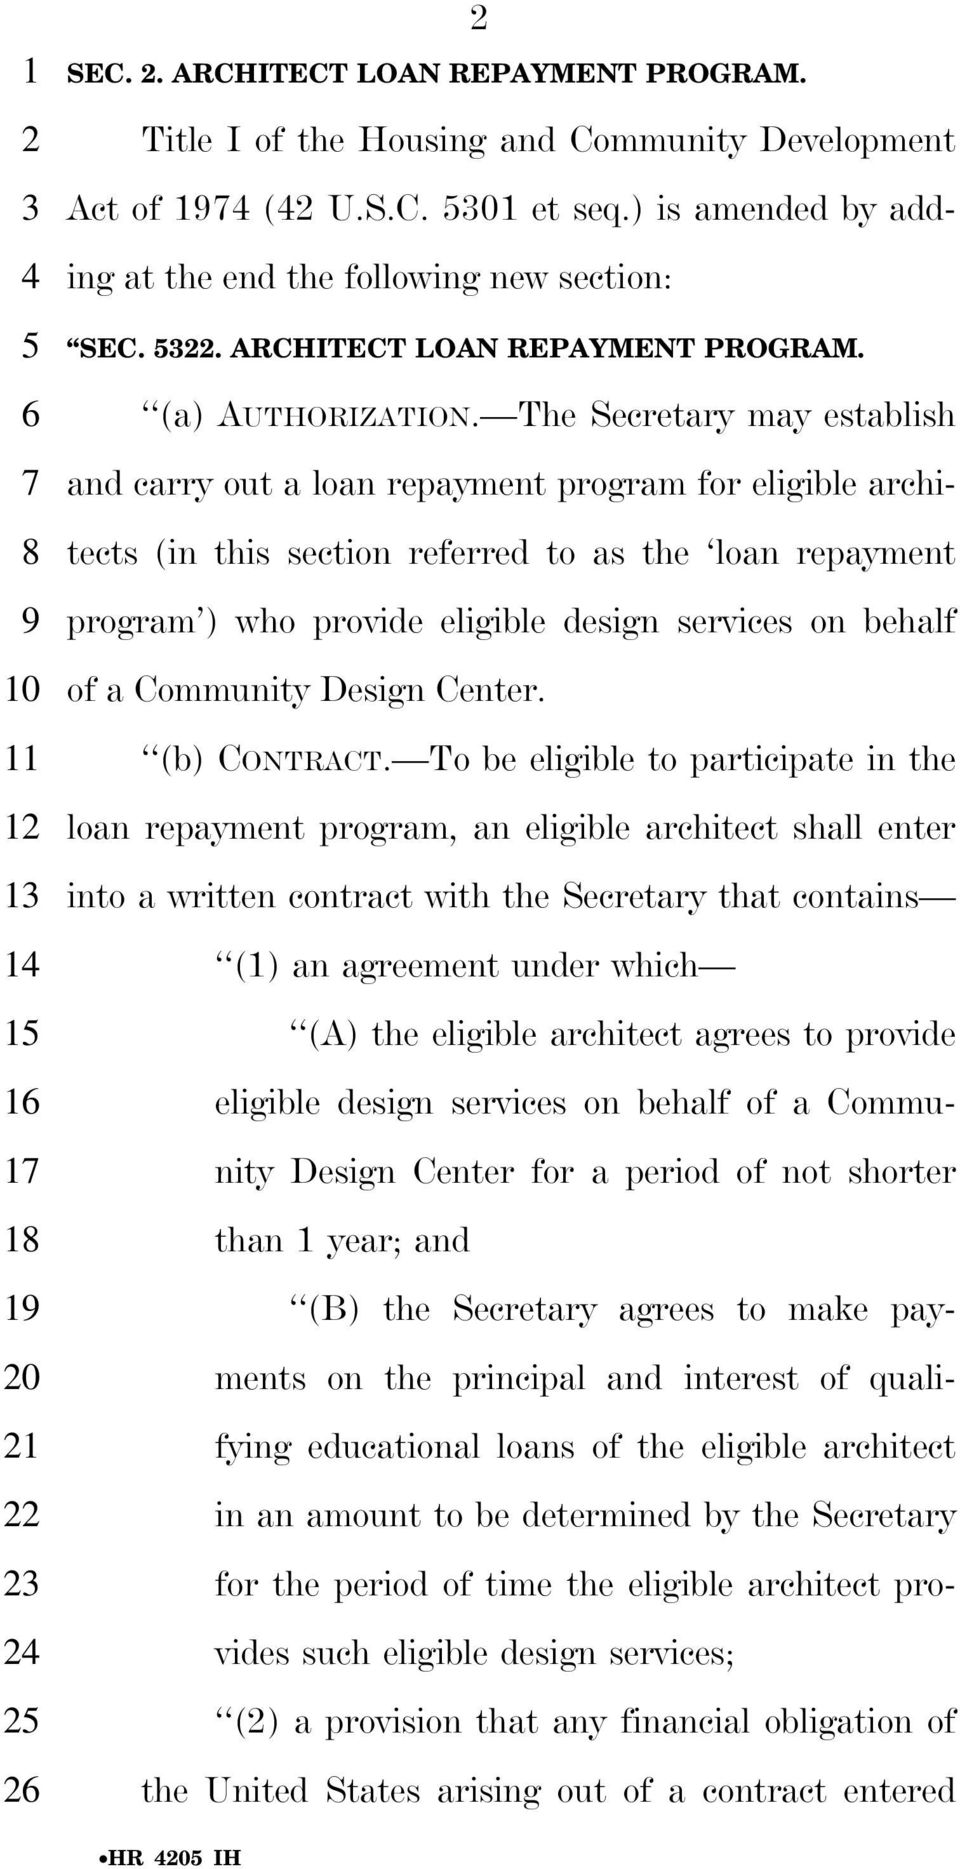 ) is amended by adding at the end the following new section: SEC. 5322. ARCHITECT LOAN REPAYMENT PROGRAM. (a) AUTHORIZATION.